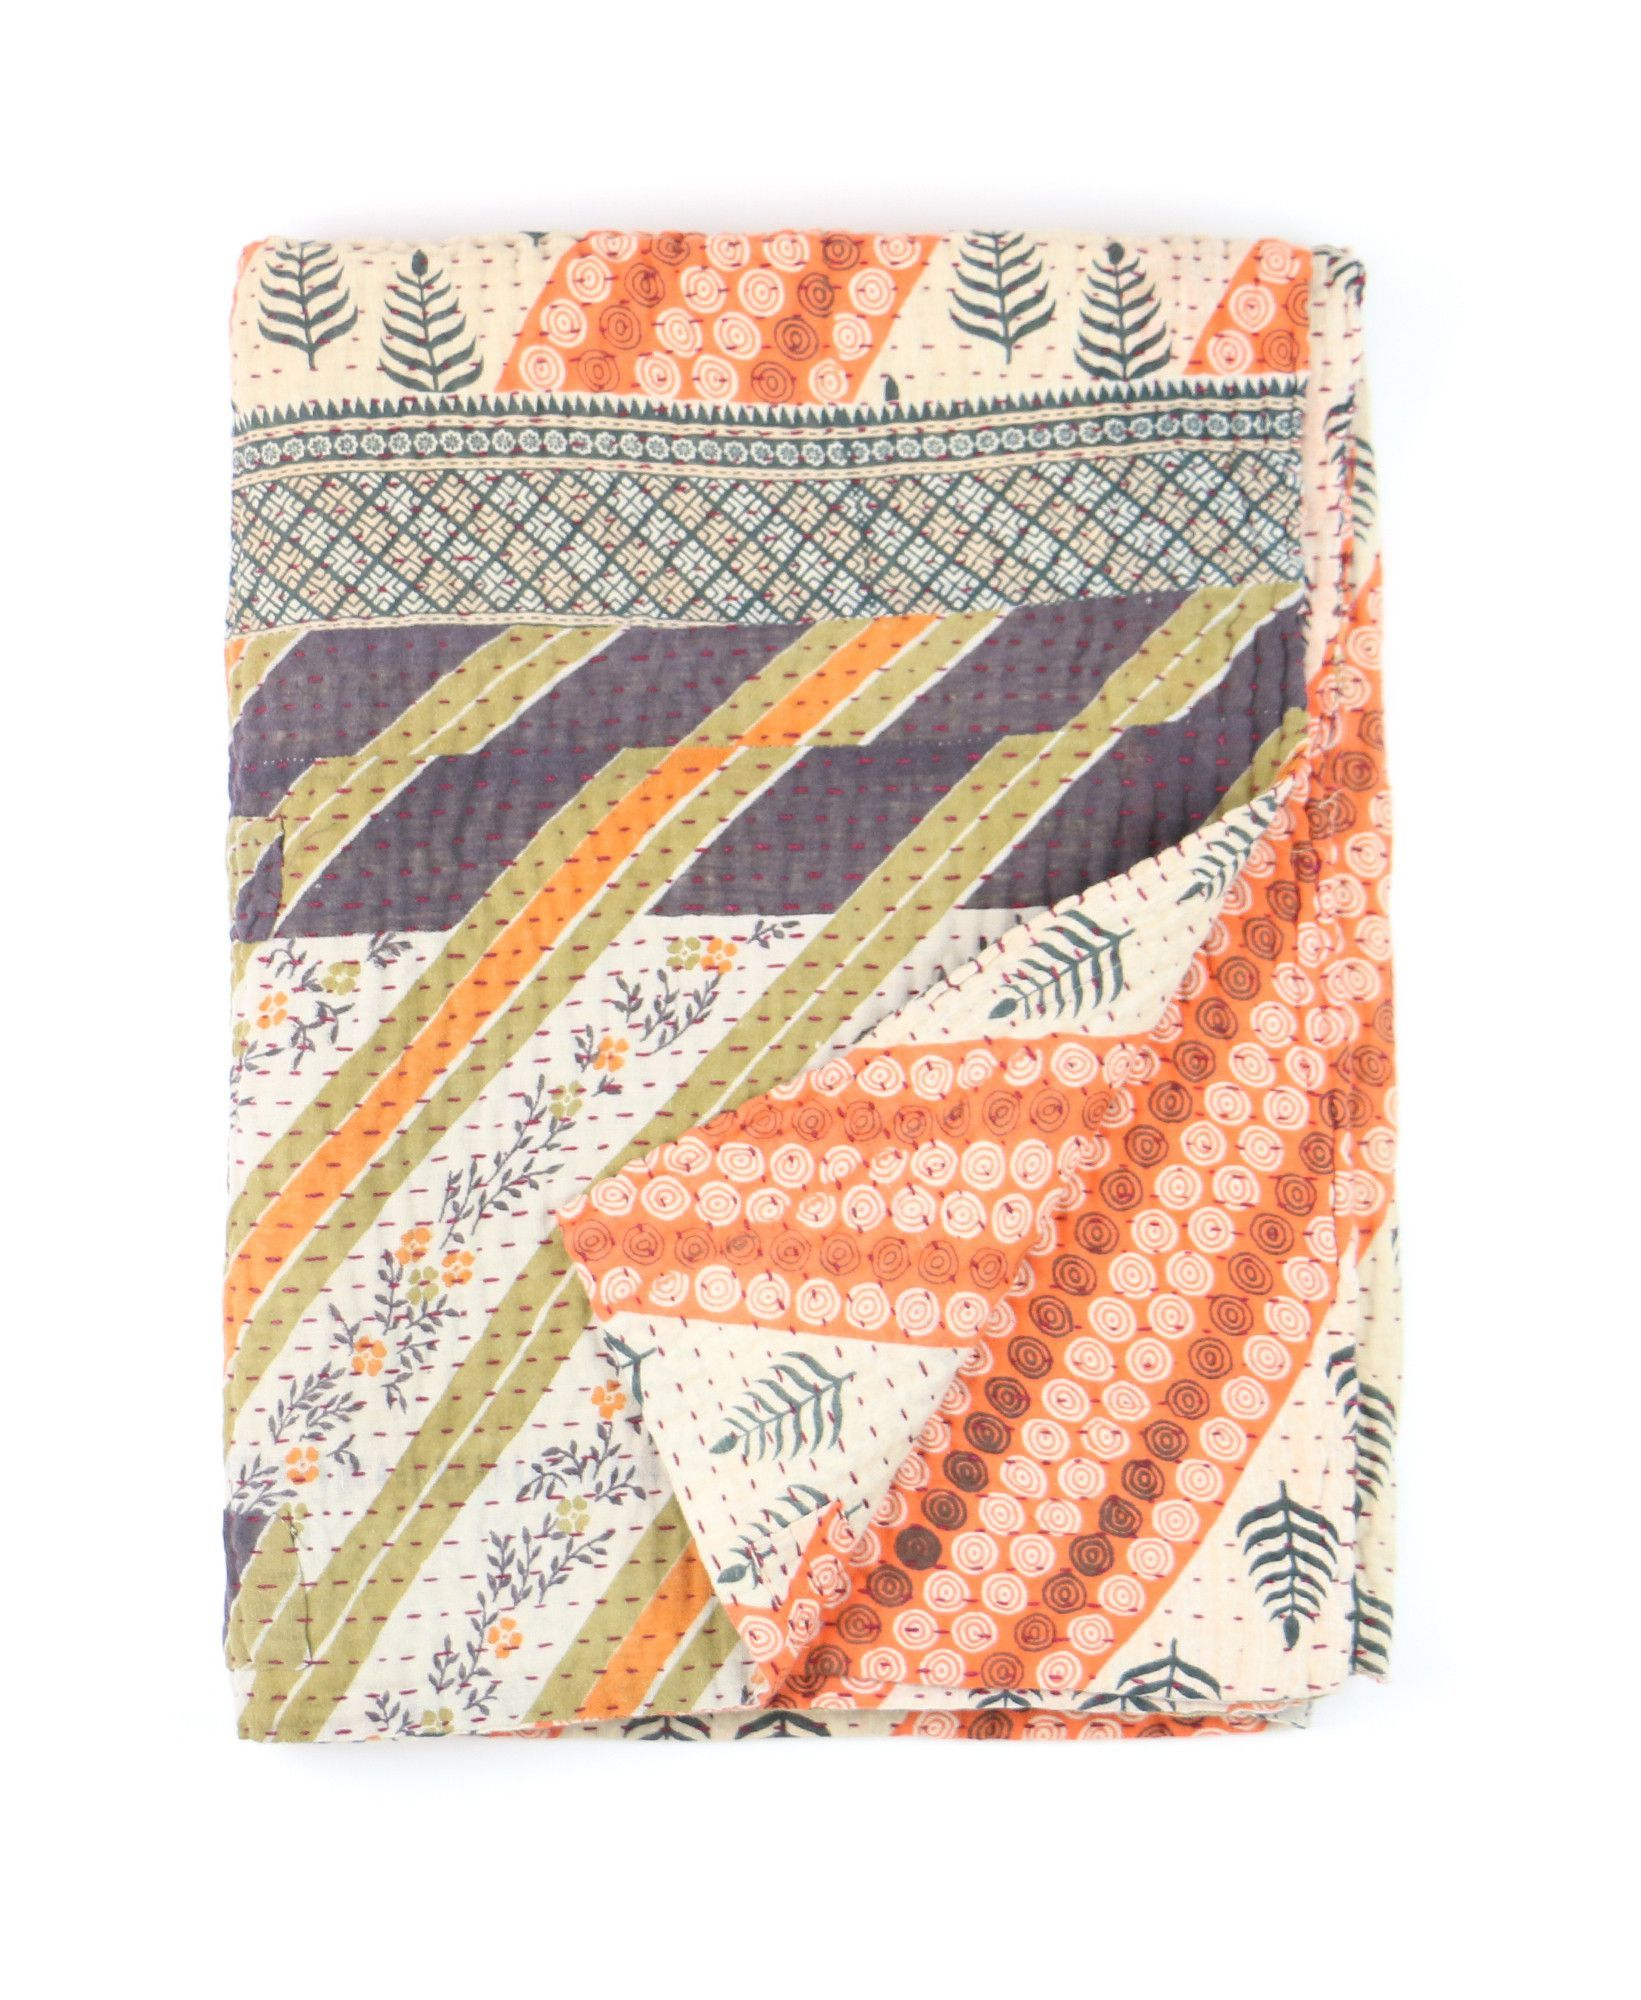 Kantha throw quilt, perfect for any gender. Varying colors and patterns make it a unique piece.